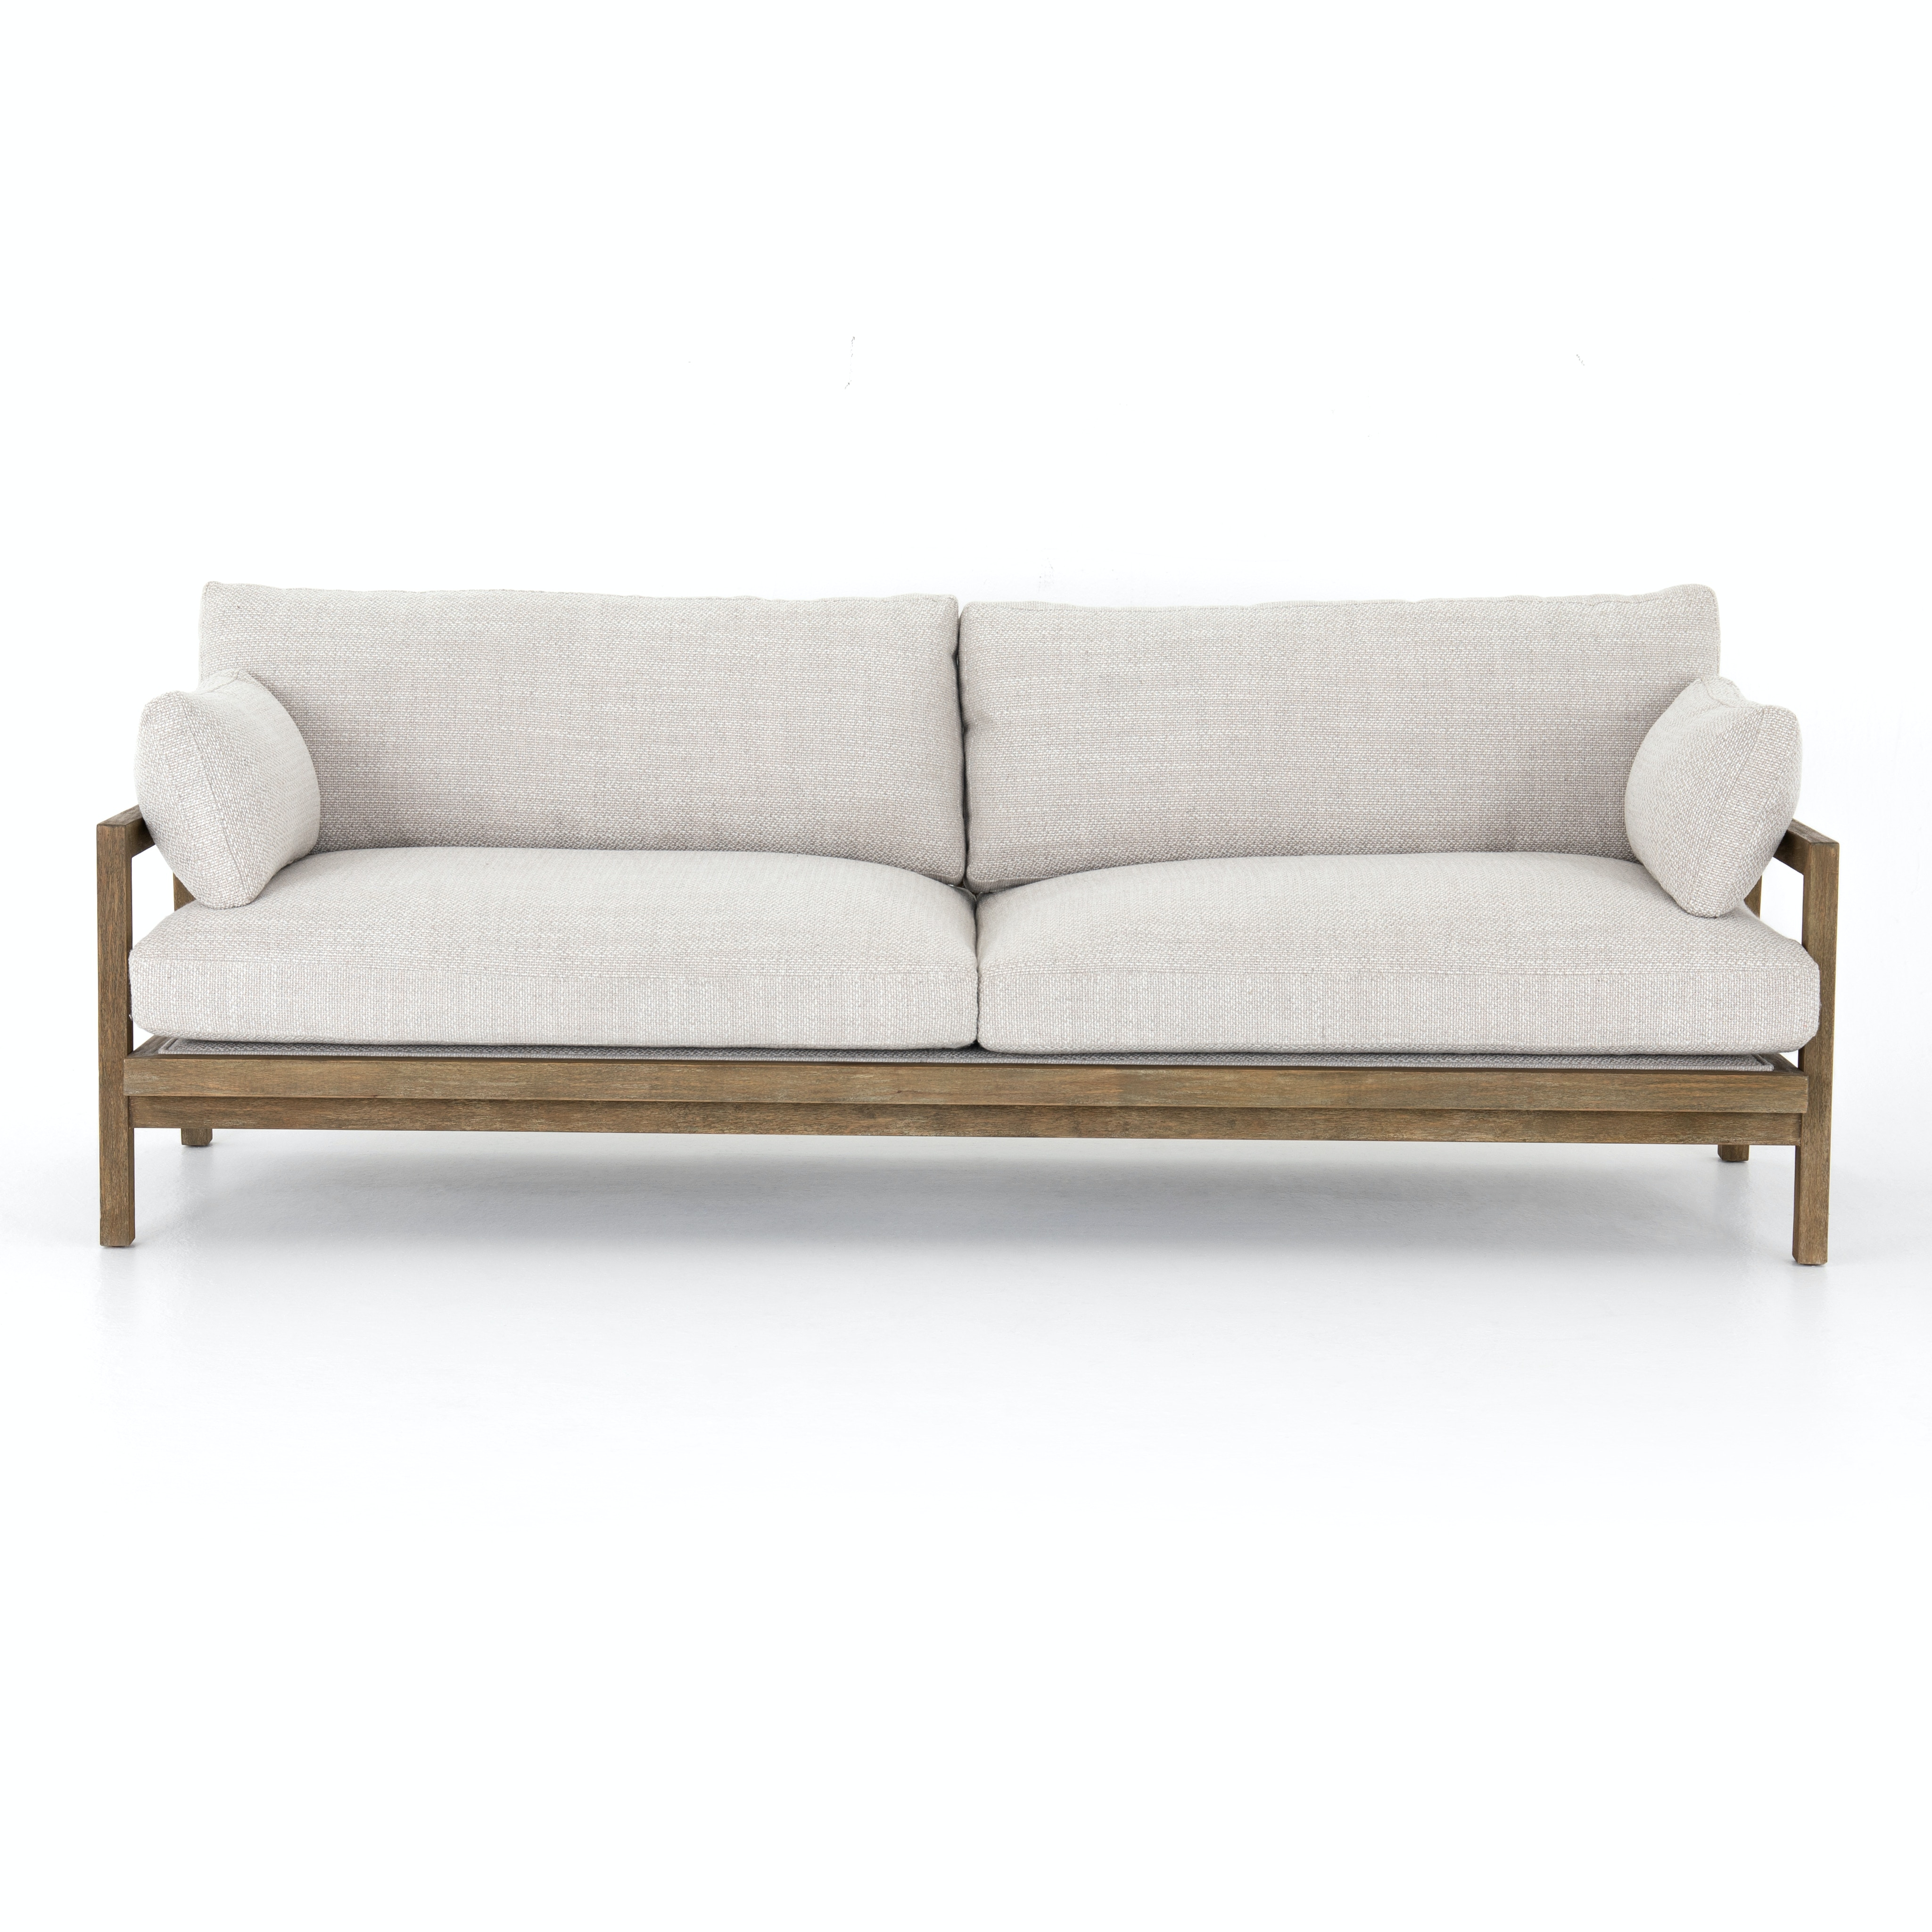 Four Hands Furniture 109392 002 Living Room Turner Sofa 91 Gibson Wheat